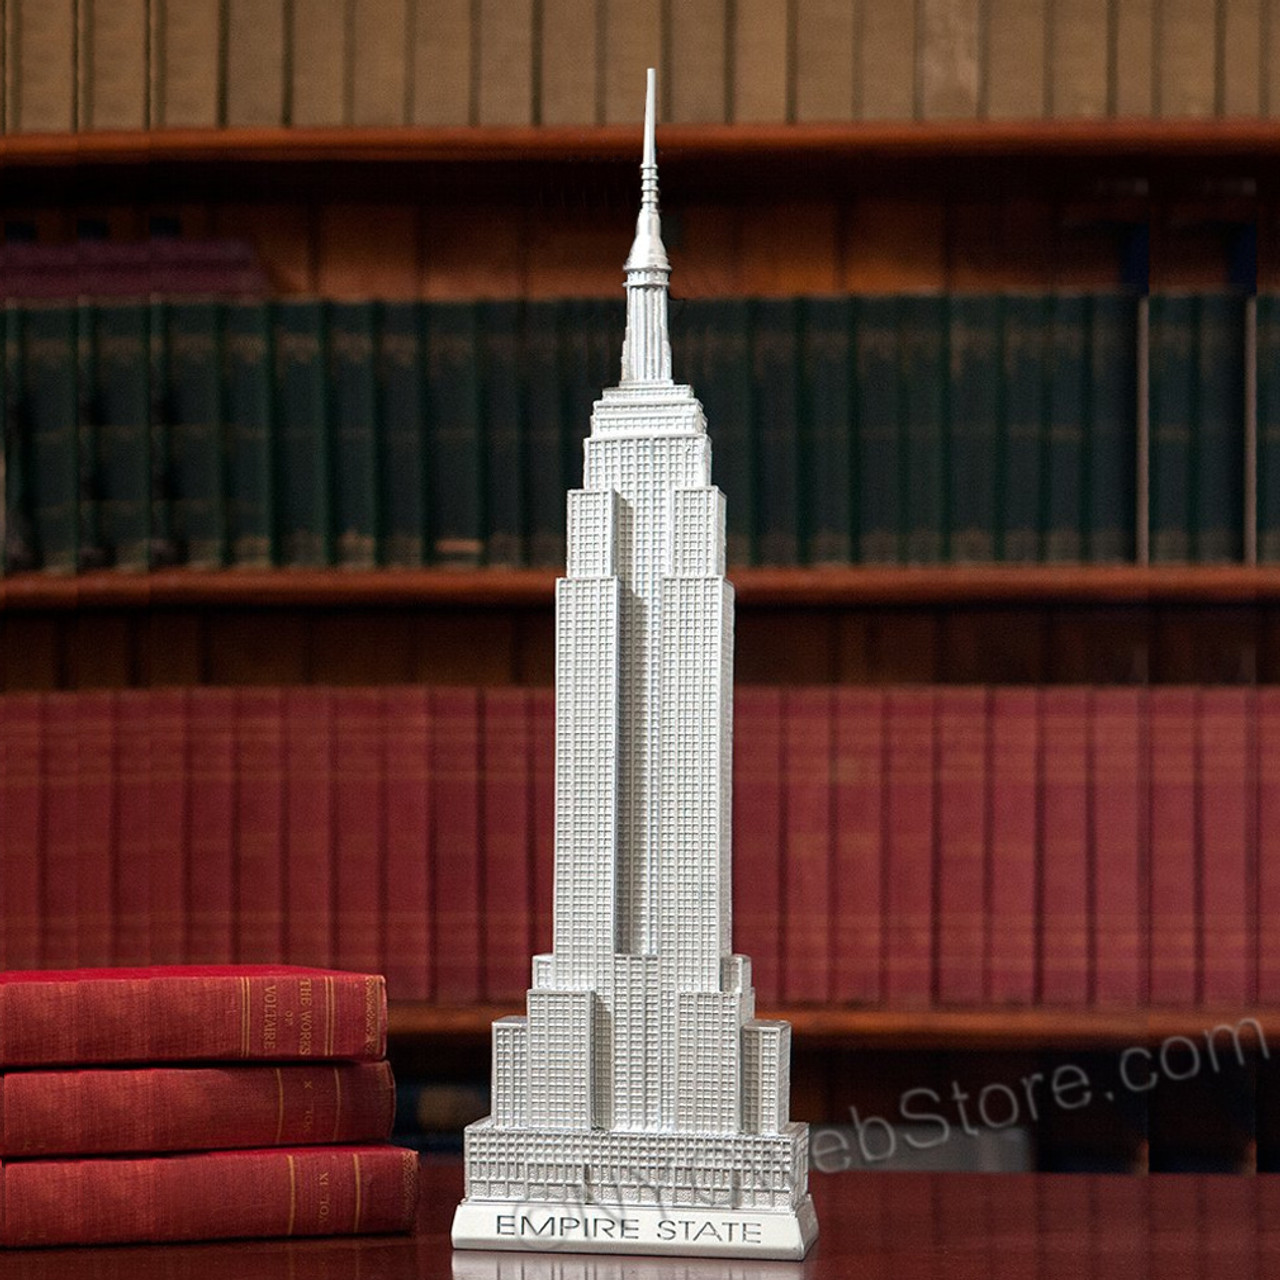 15 Inch Empire State Building Statue Souvenirs From Nyc